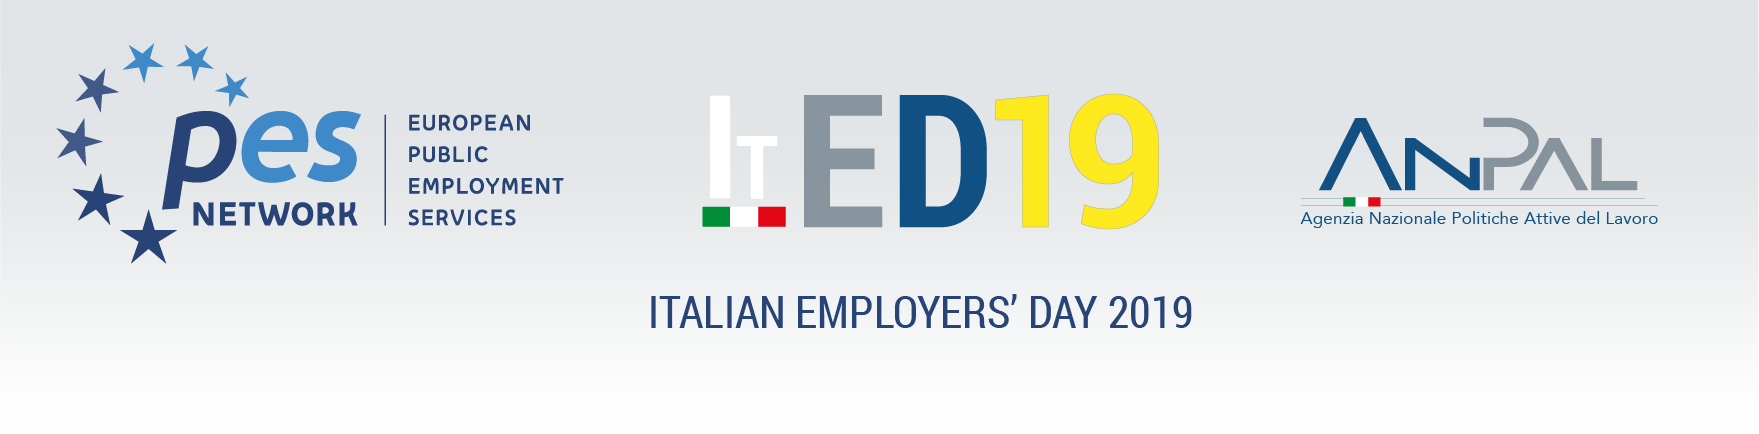 Italian Employers Day 2019